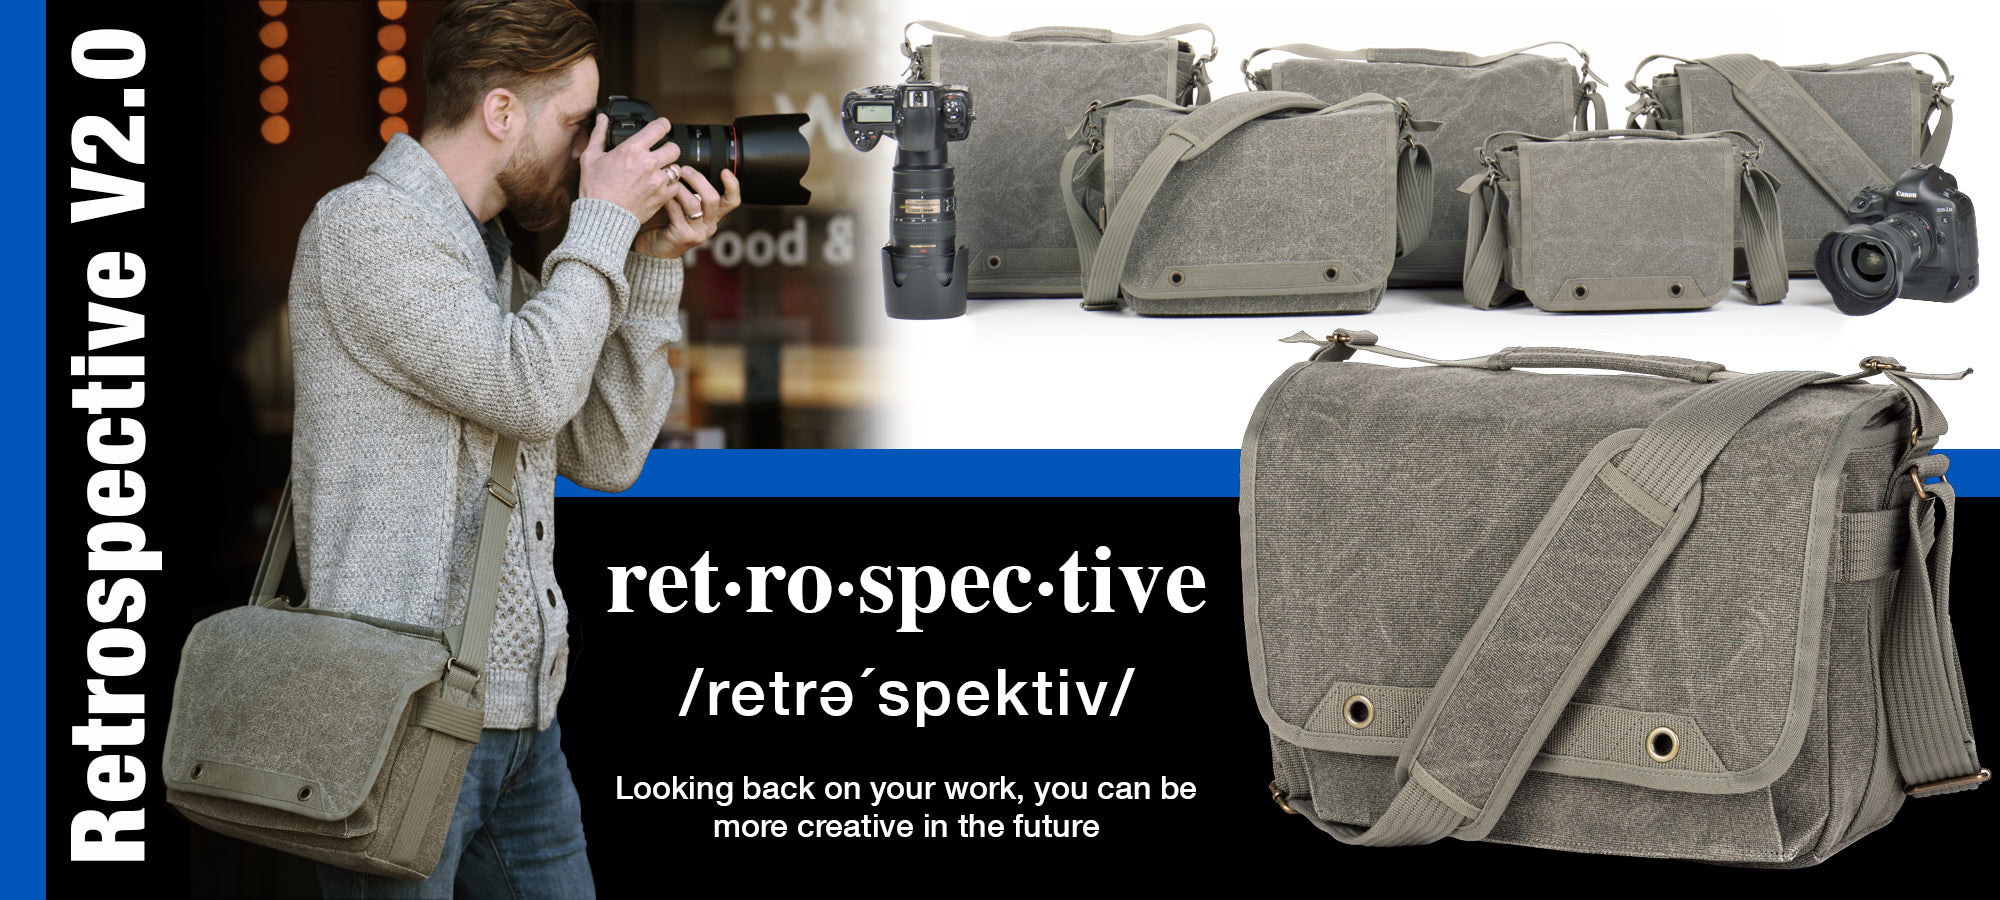 The Retrospective V2.0 series shoulder bags retain that classic look but include many innovative new features.